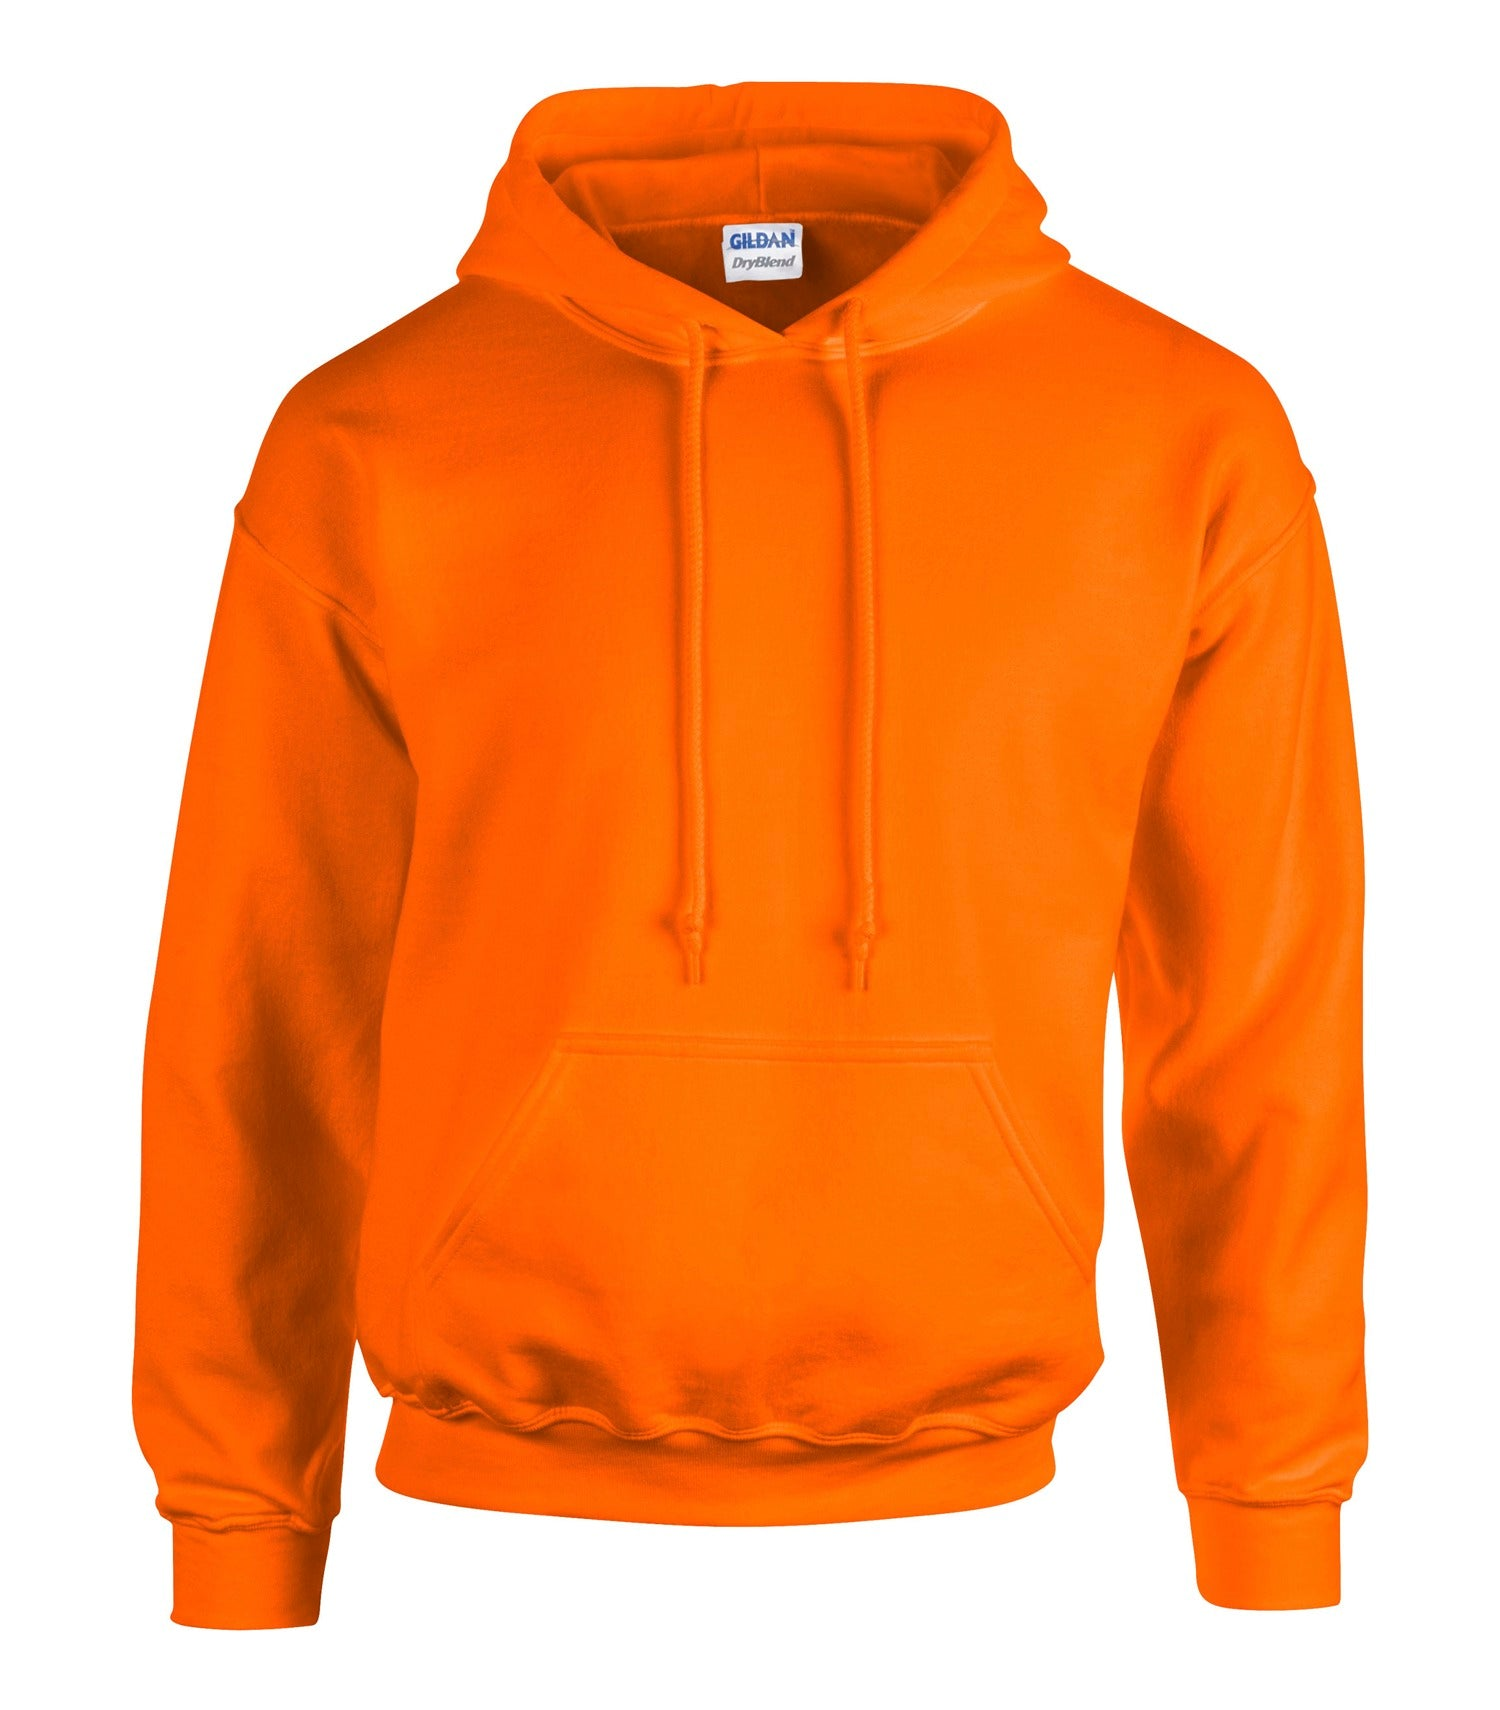 GILDAN® HEAVY BLEND™ HOODED SWEATSHIRT #1850